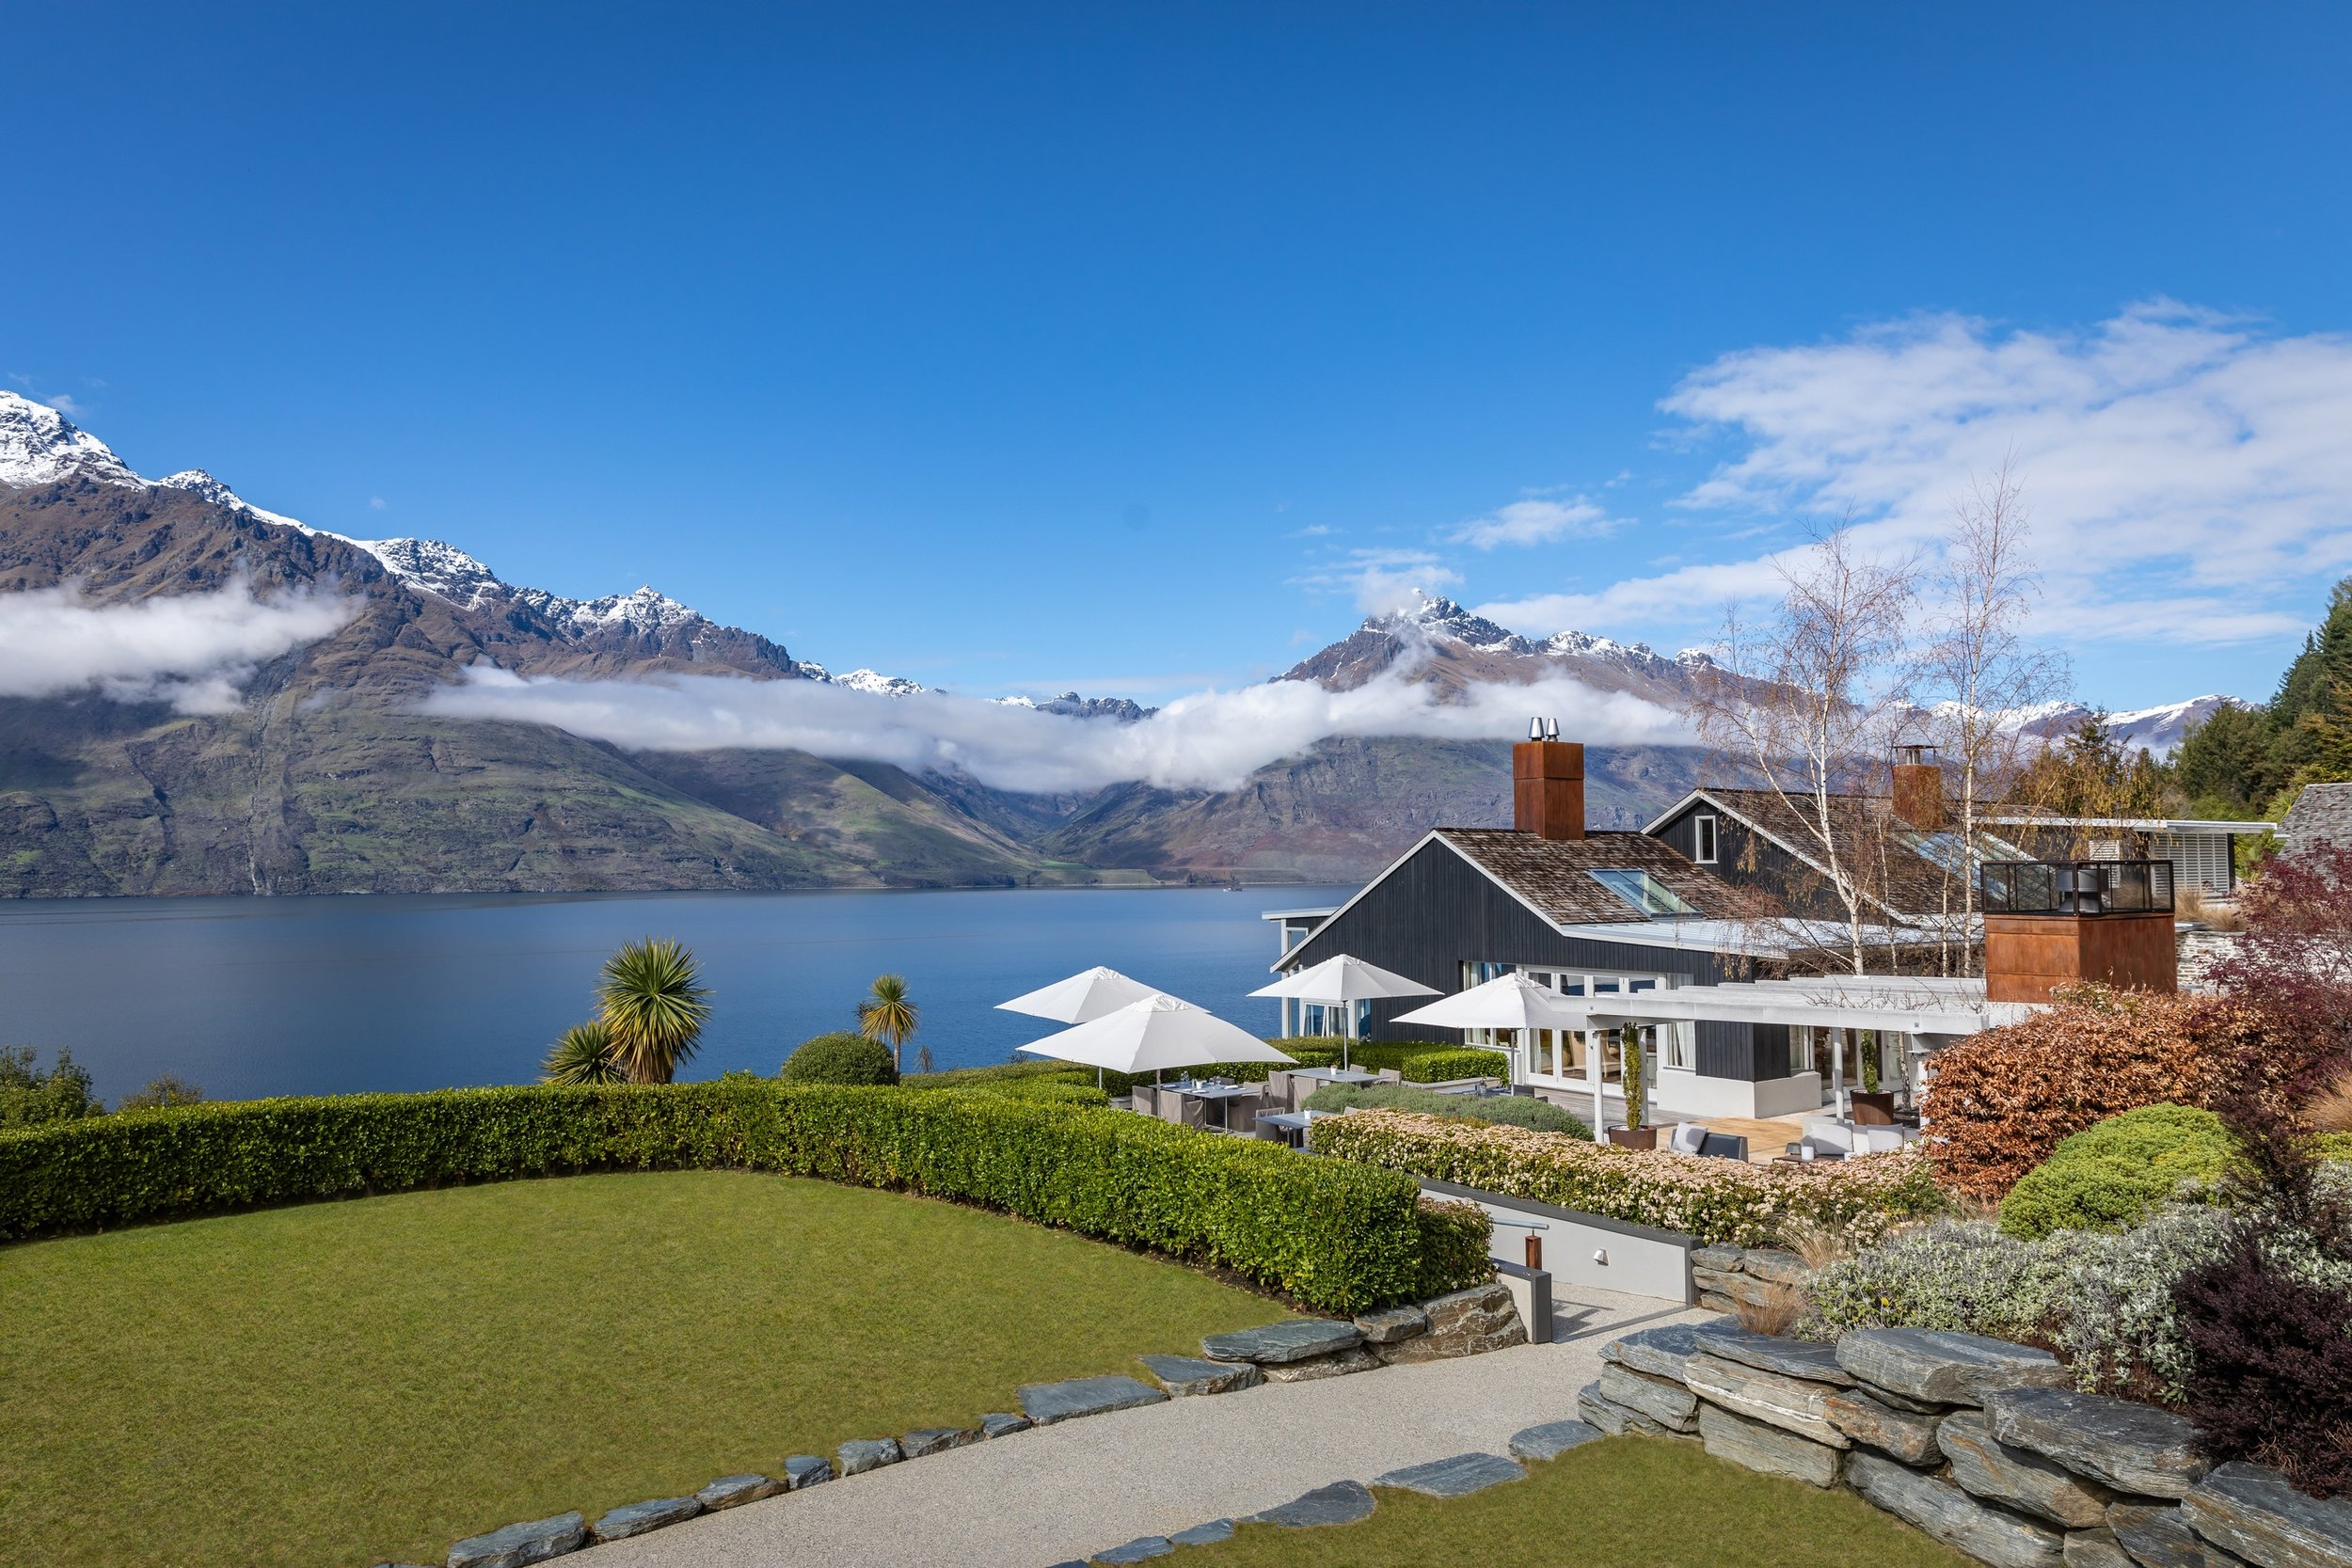 Mabey Ski_New Zealand_Queenstown_Matakauri Lodge 42.jpg